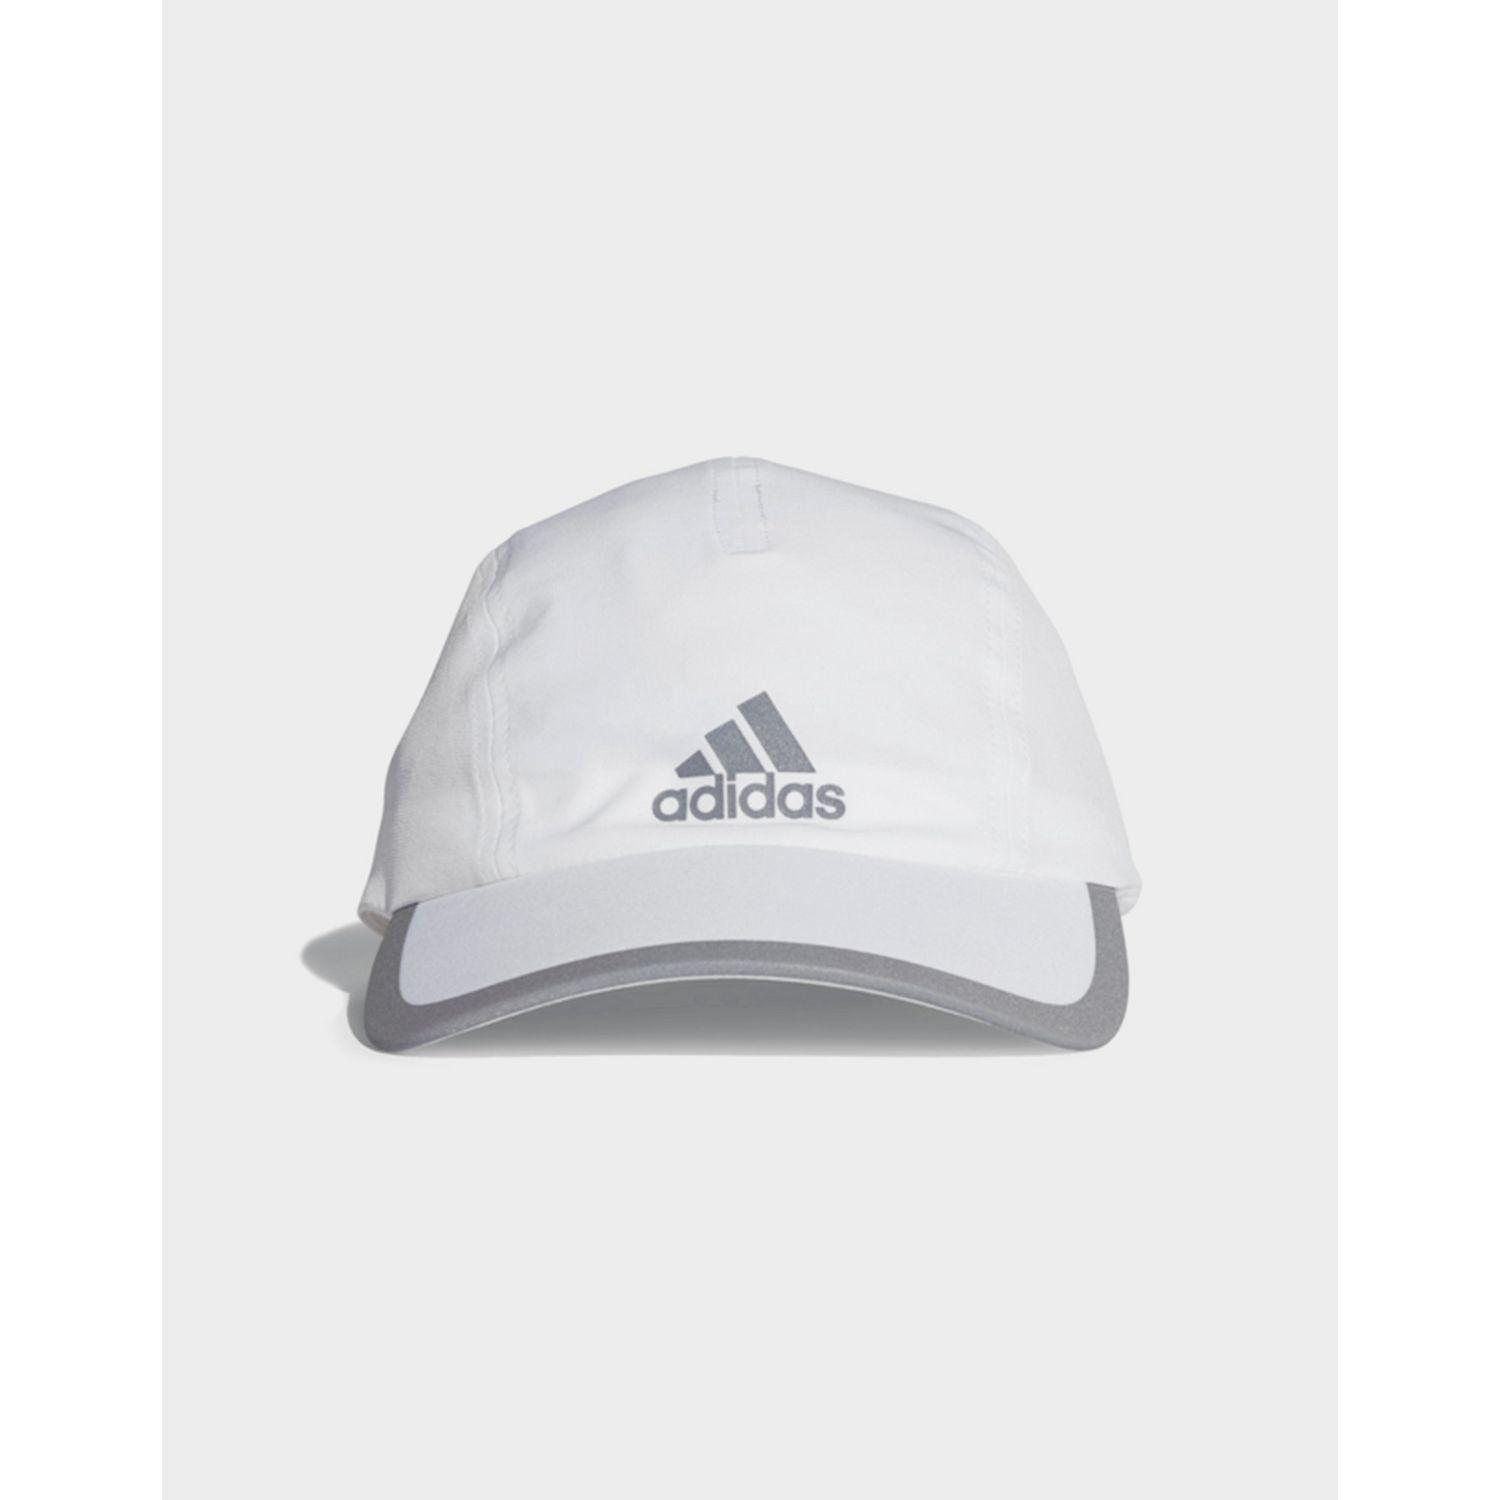 baaac4a6082 Lyst - adidas Climalite Running Cap in White for Men